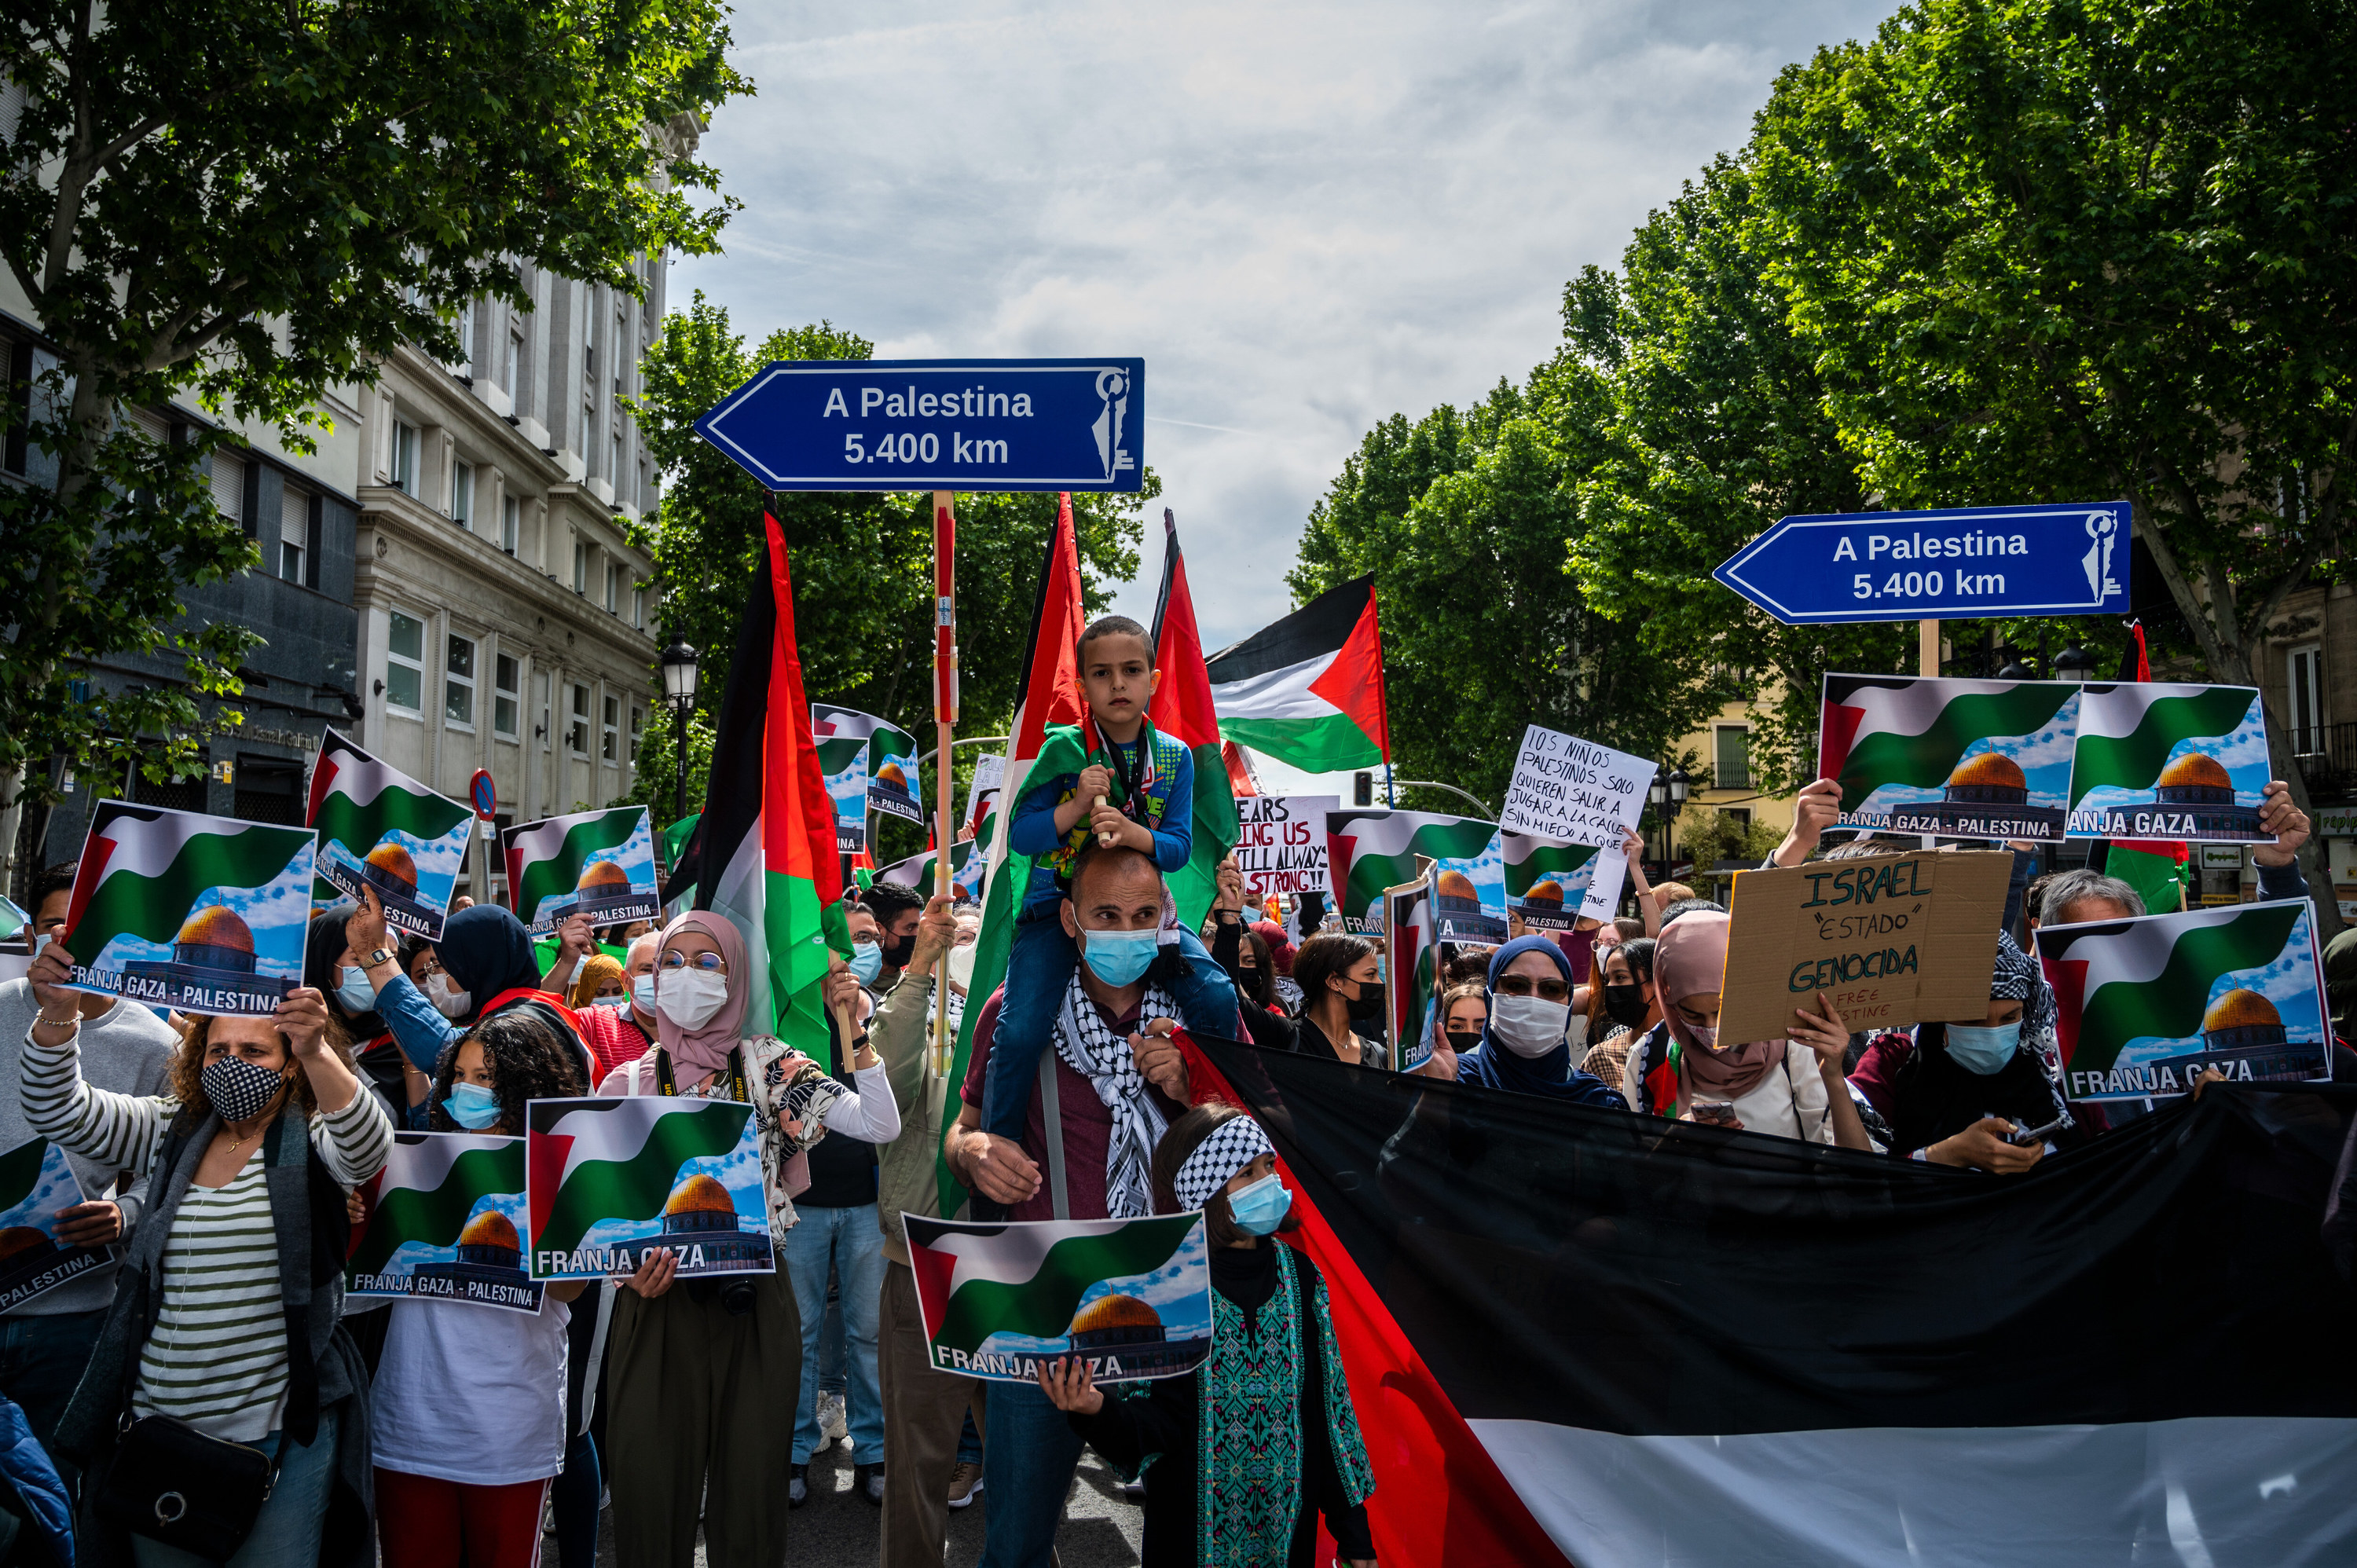 Protesters hold up signs and the Palestinian flag